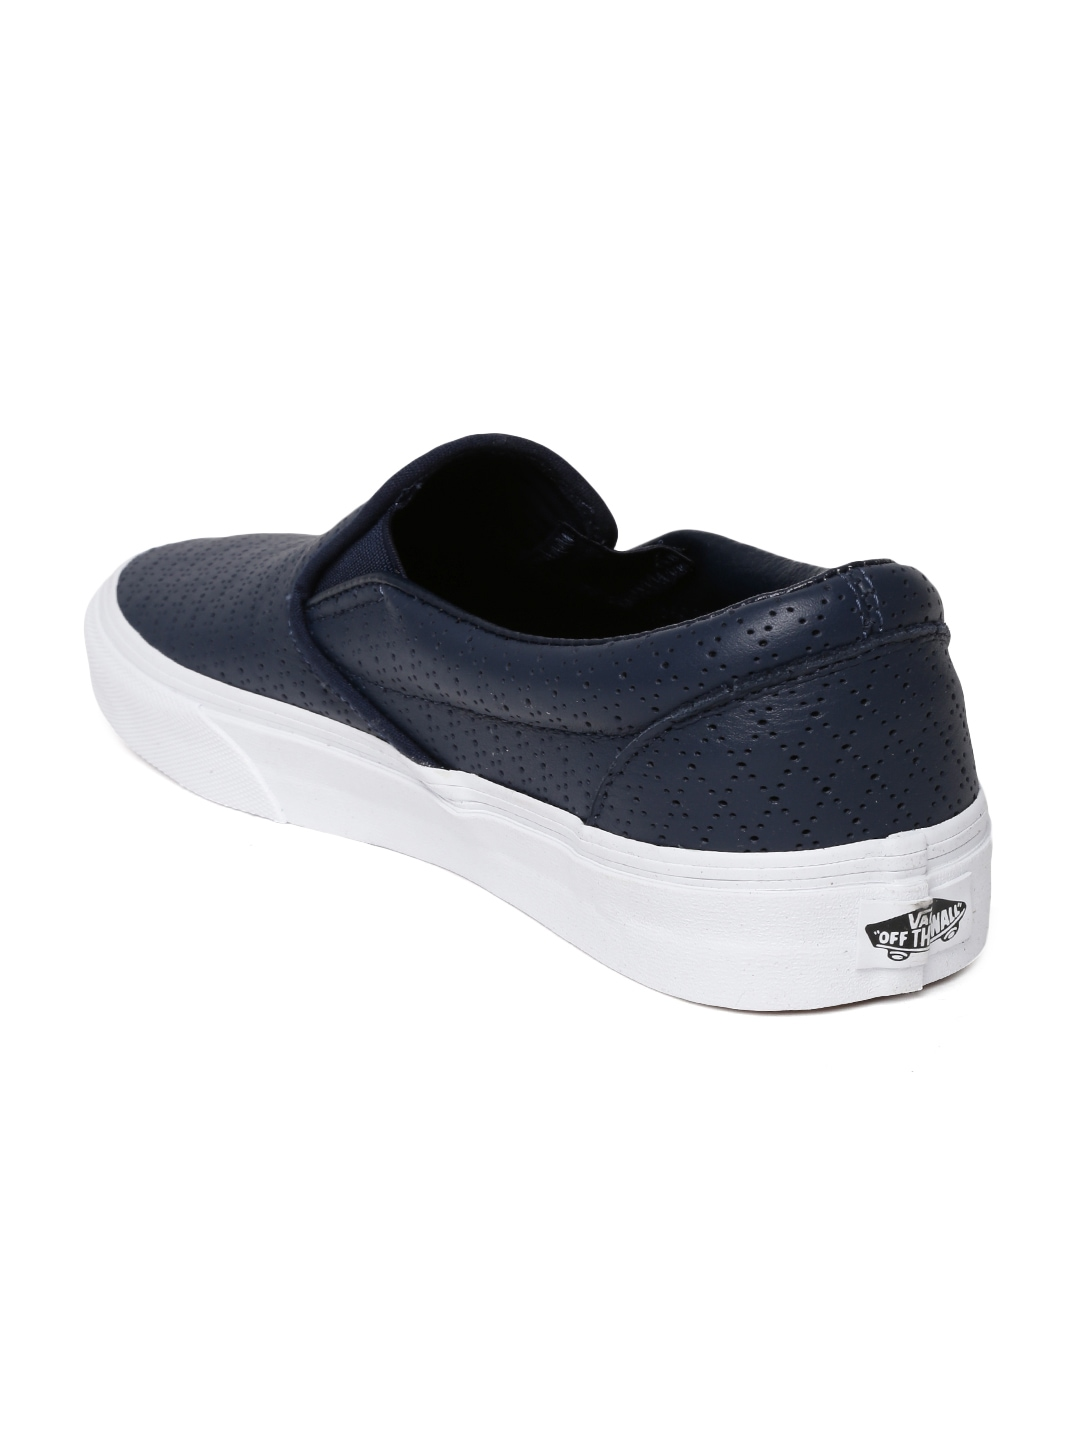 myntra vans unisex navy leather casual shoes 705415 buy